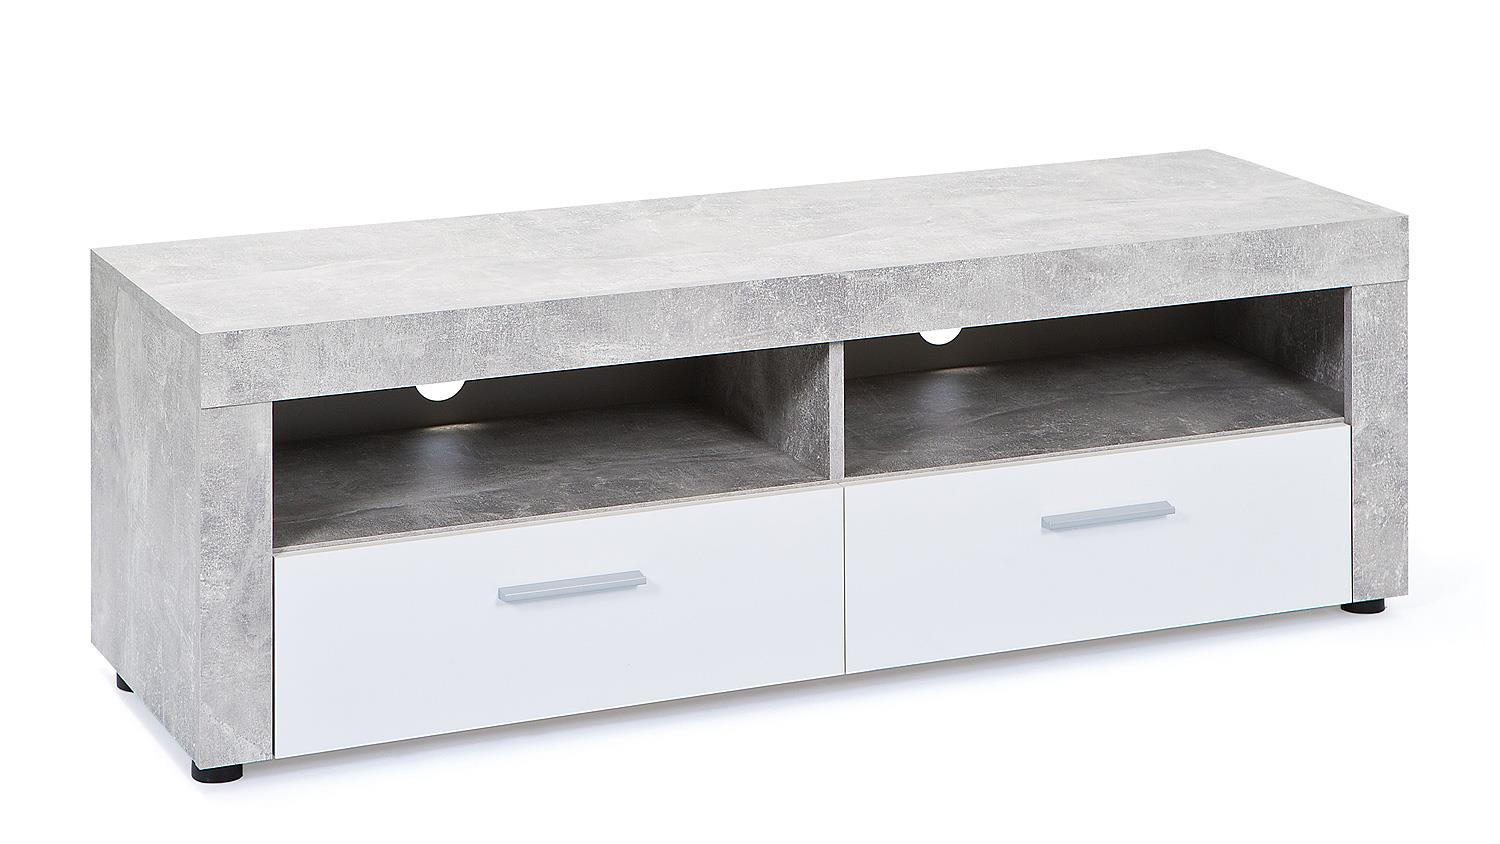 Tv Schrank Beton Tv Board Betonoptik. Pharao24 Tv Board In Grau Betonoptik